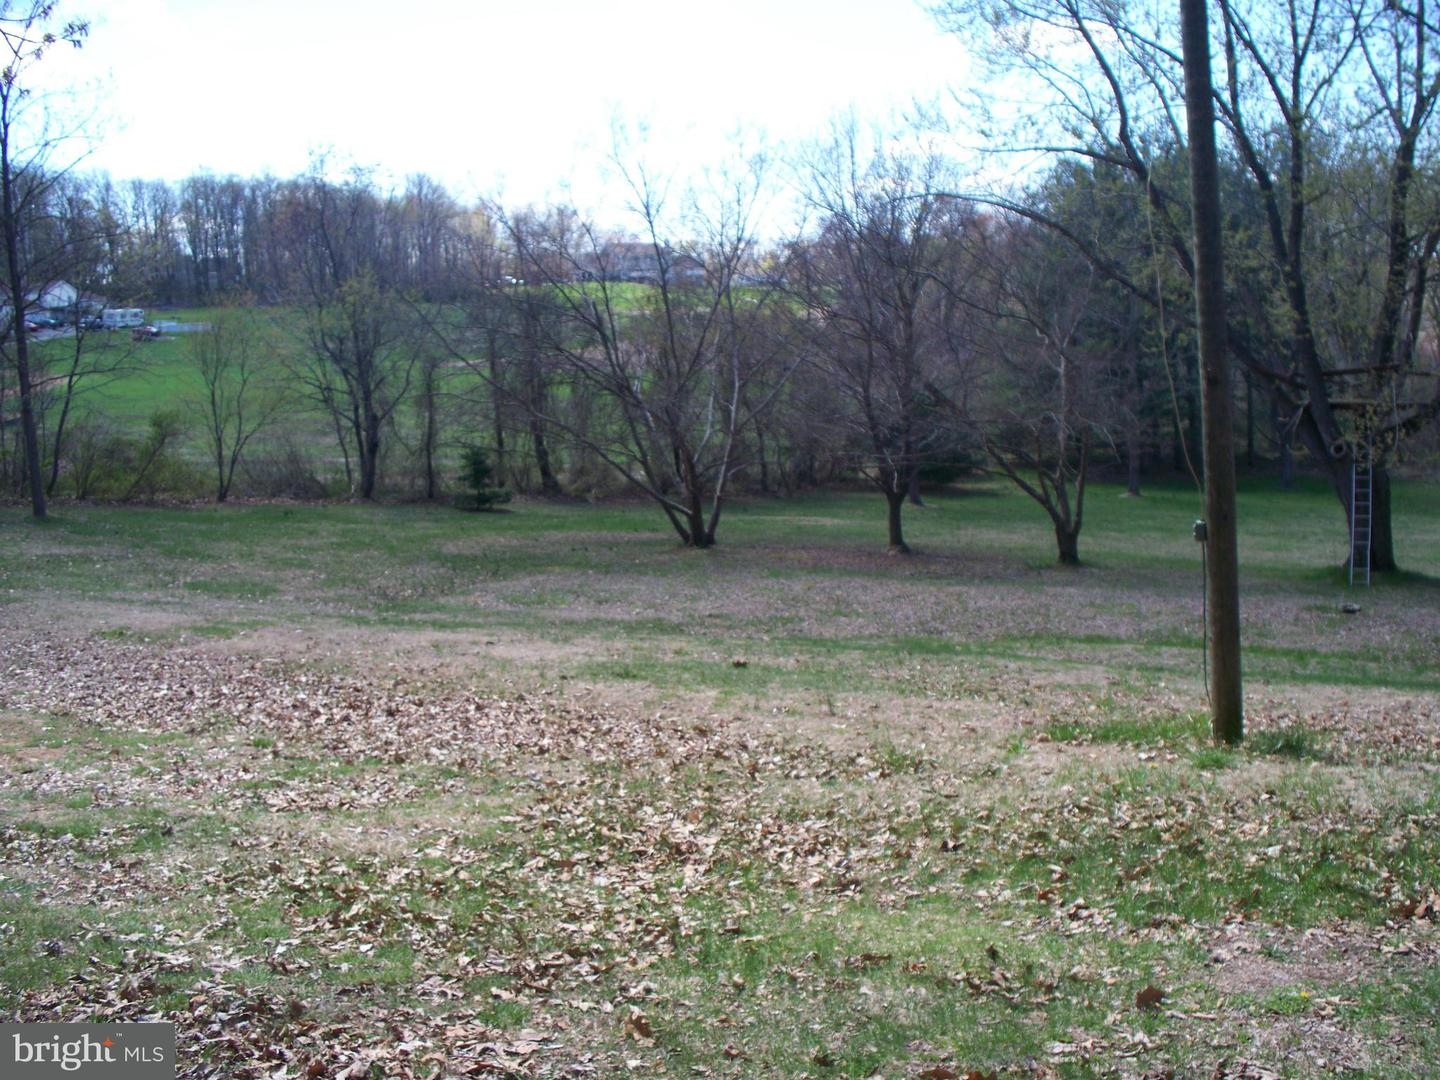 Land for Sale at 5162 Buttermilk Rd Pylesville, Maryland 21132 United States